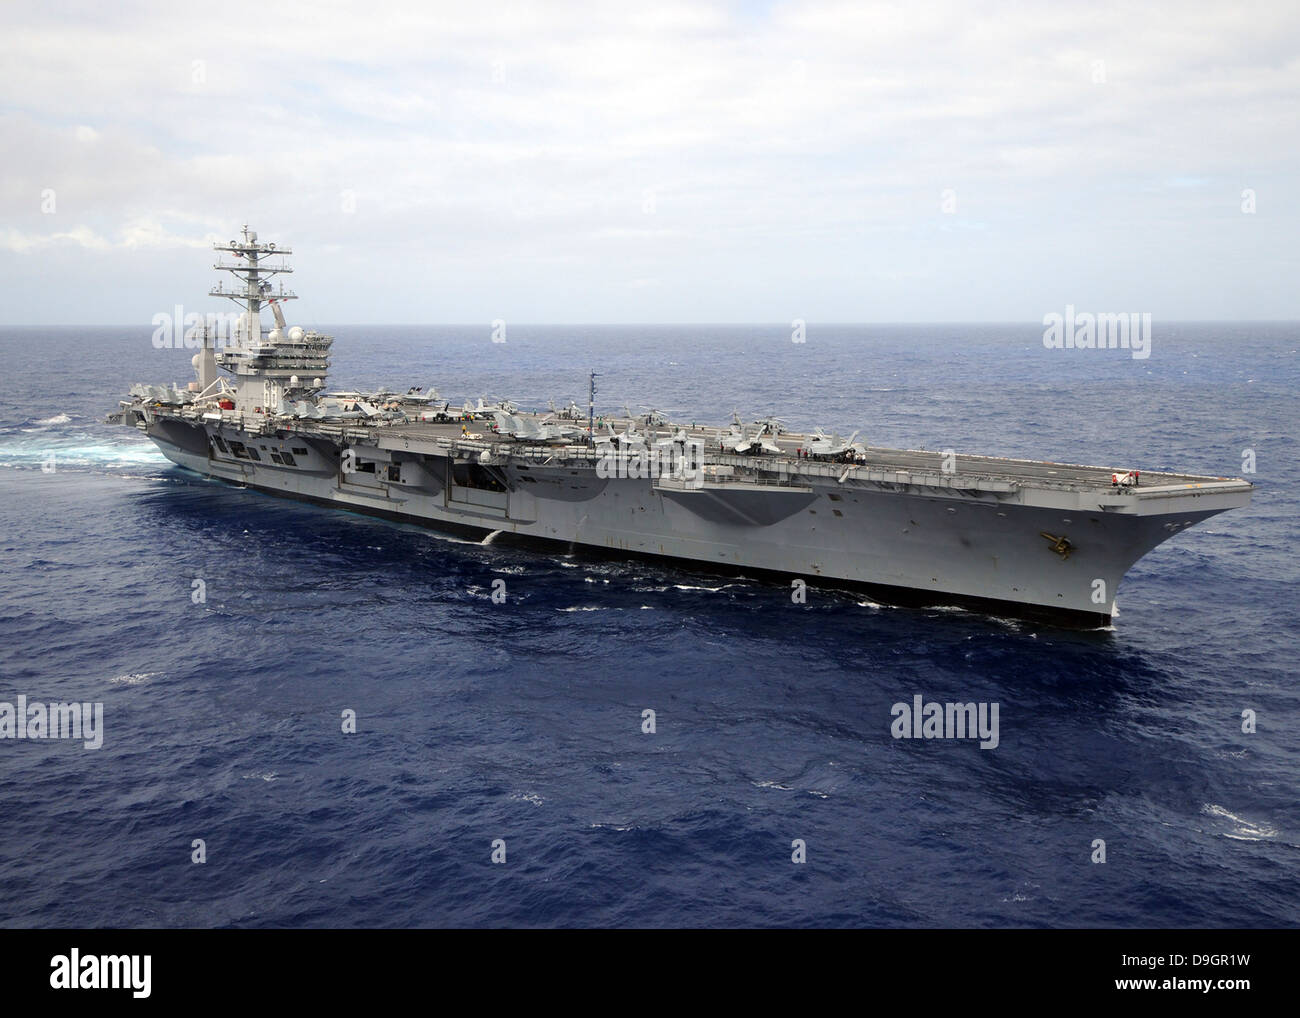 Pacific Ocean, June 25, 2012 - The aircraft carrier USS Nimitz transits the Pacific Ocean. - Stock Image